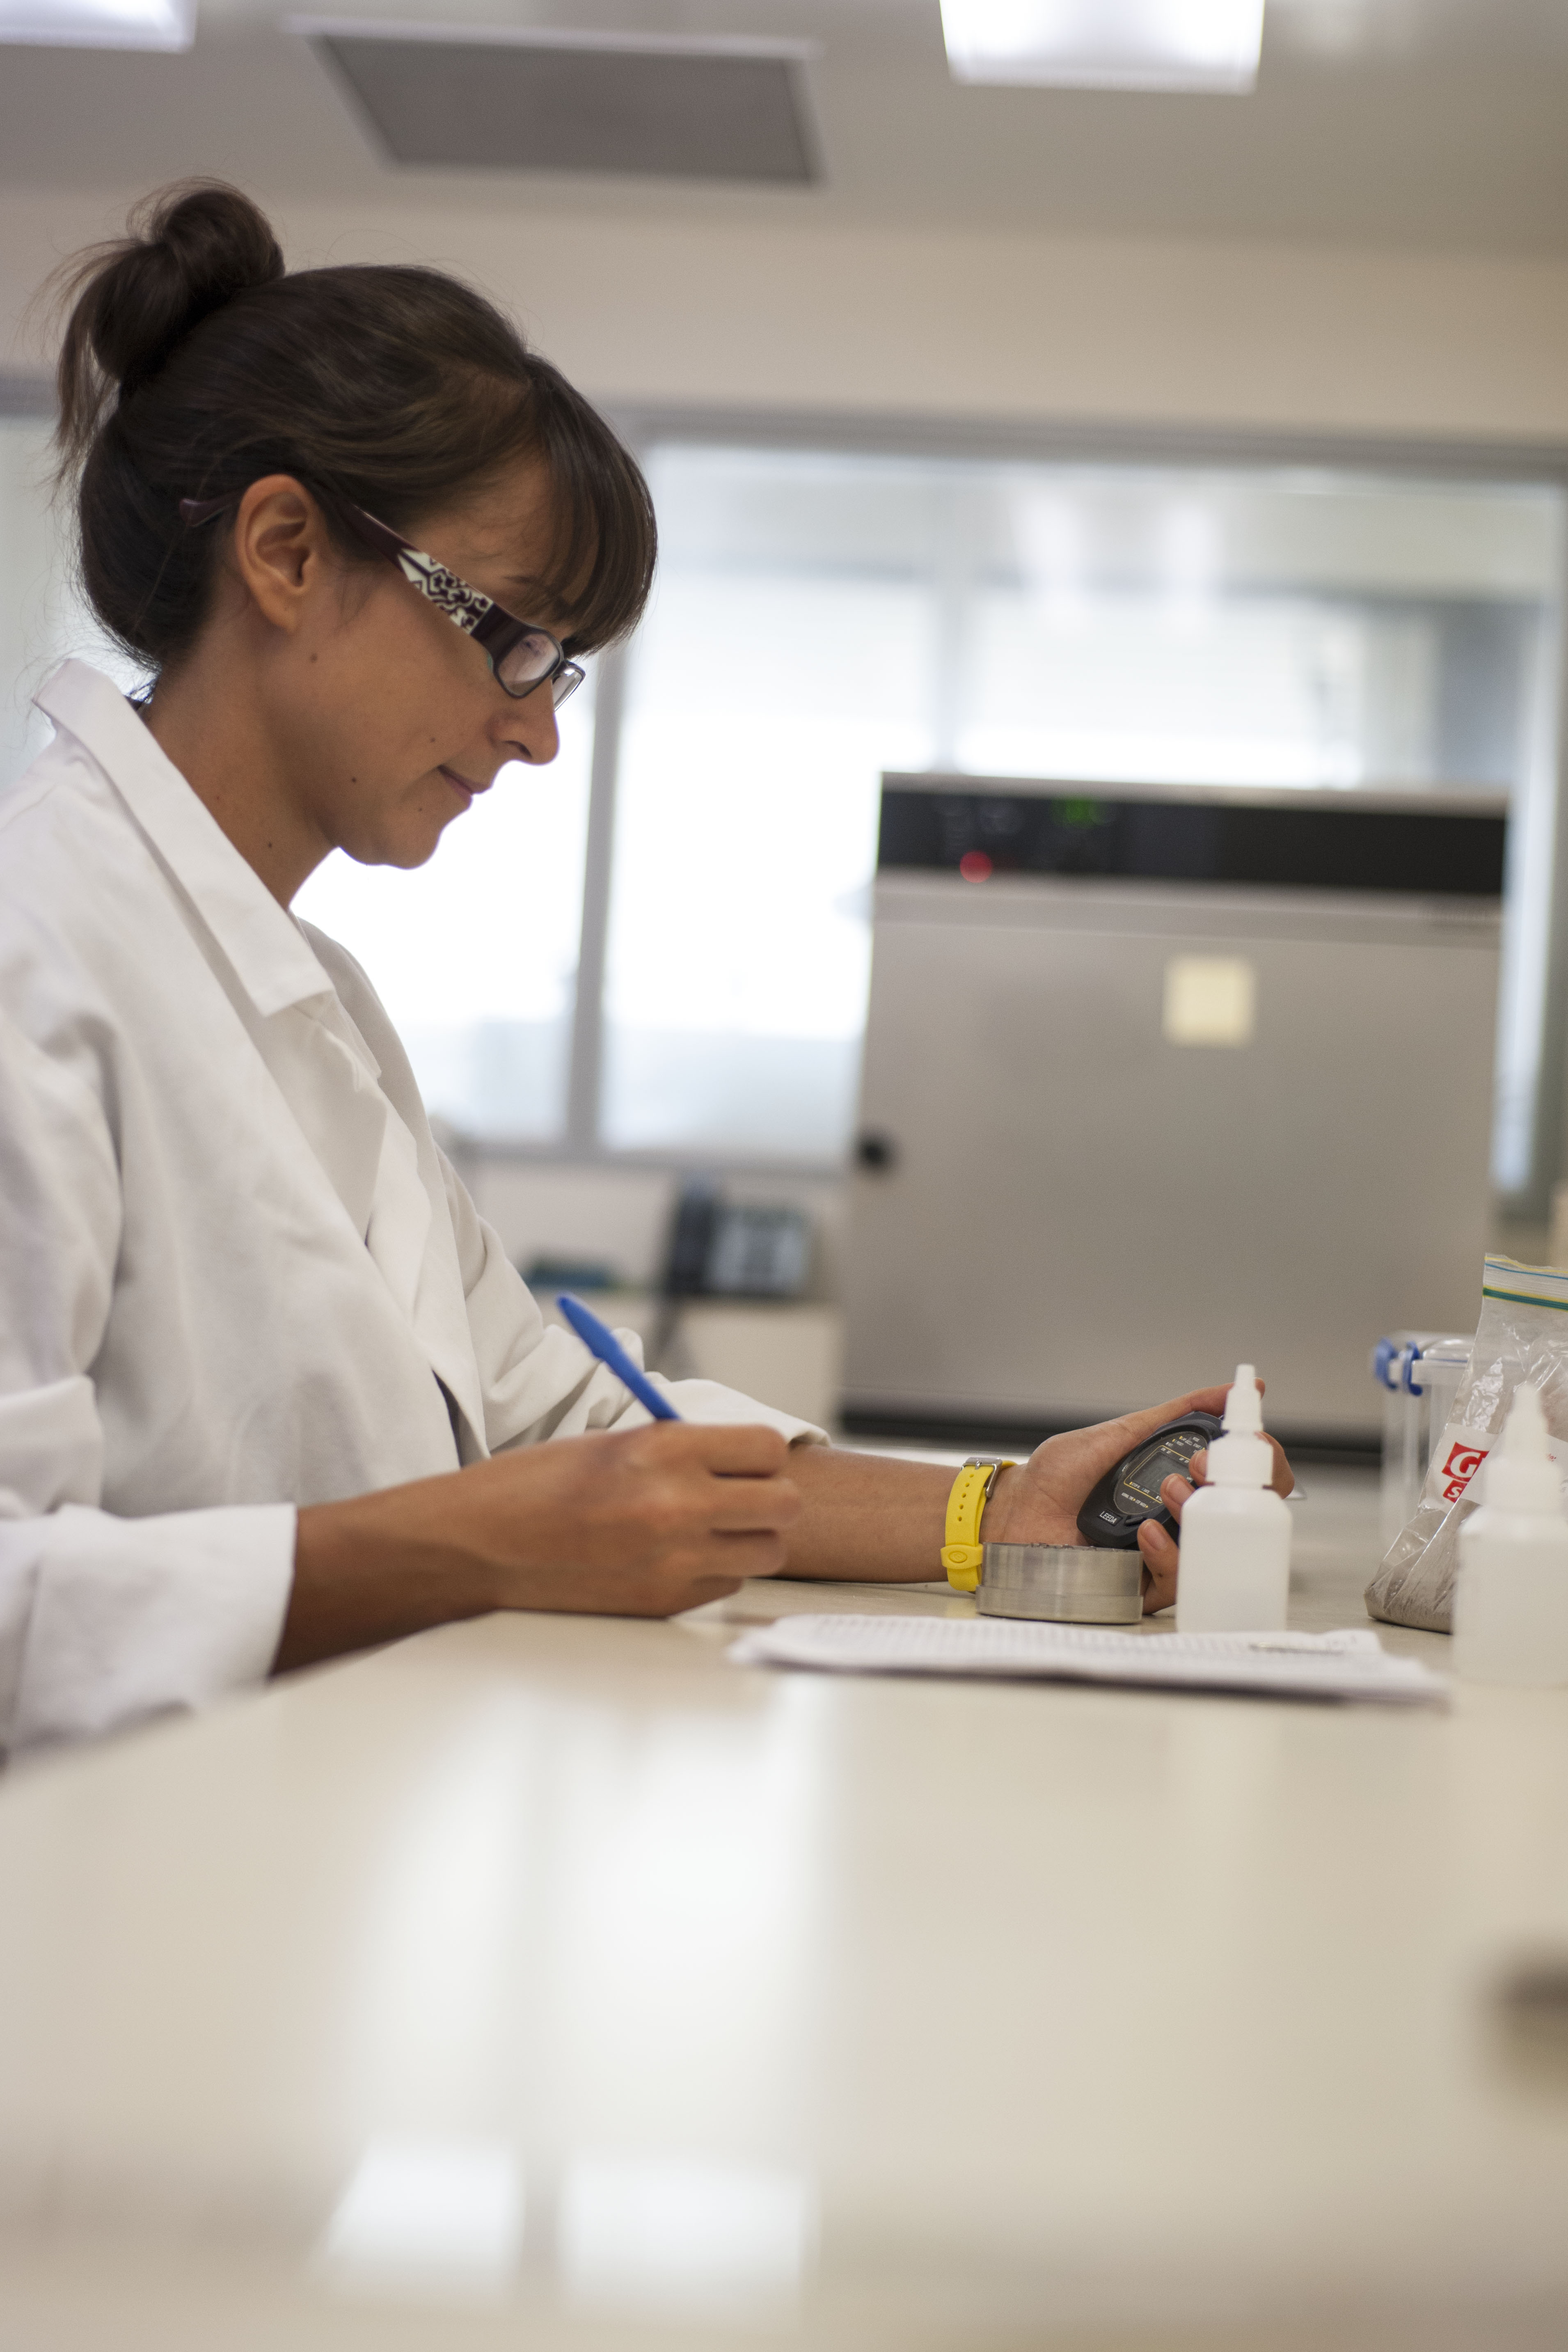 A female CSIRO scientist in a white lab coat and glasses sitting at a white lab bench holding a blue pen and black stopwatch watching a small tin of soil on the bench